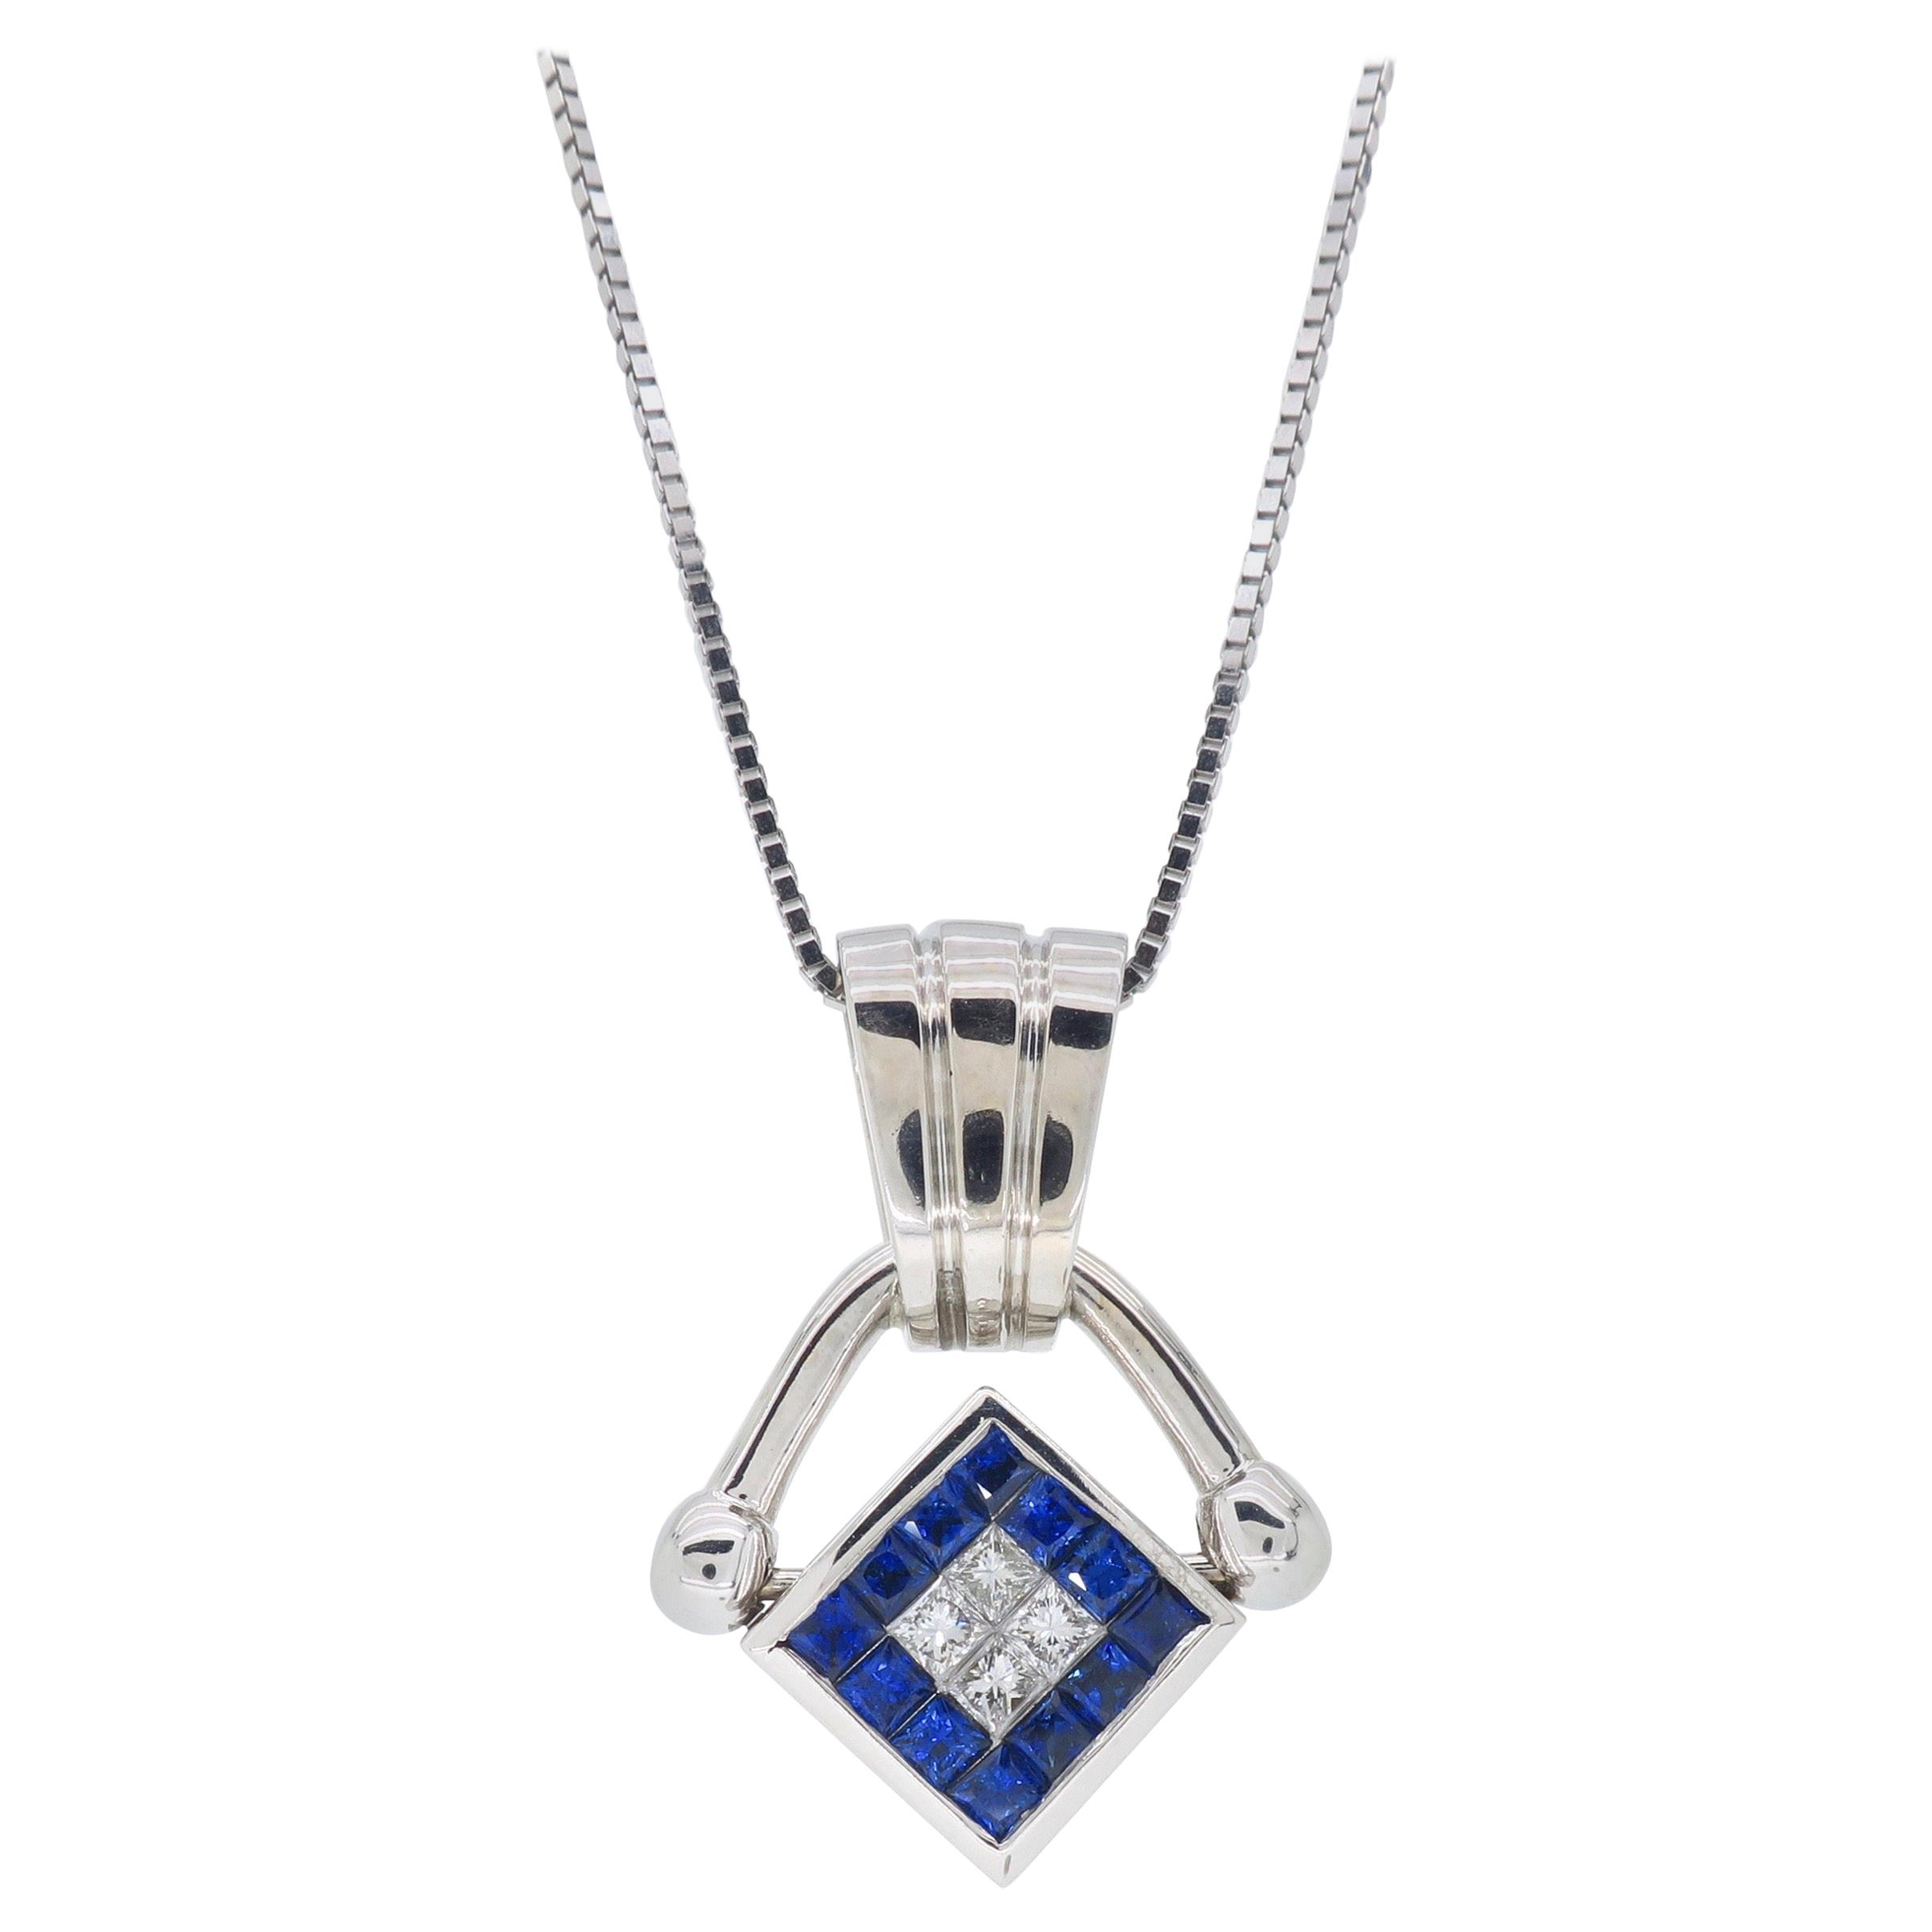 Buccellati Jade Pink And Blue Sapphire Pendant Necklace/pin Intended For 2019 Reversible Diamond, Sapphire And Aquamarine Pendant Necklaces (View 8 of 25)